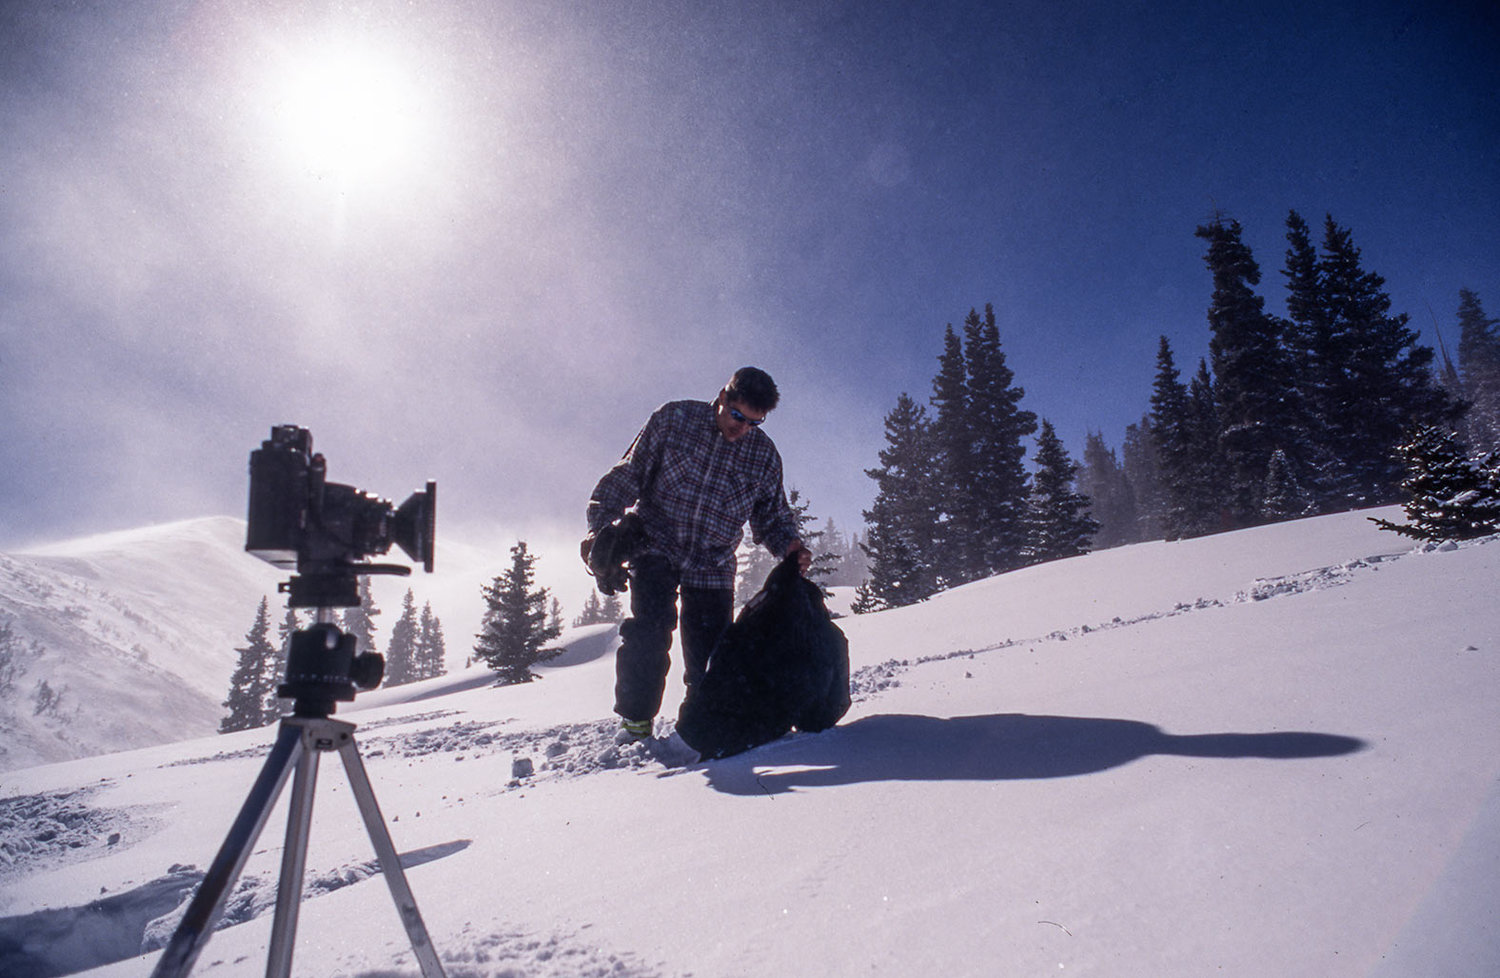 6x17 Linhof Panoramic analog camera getting prepared for a landscape/action shot with insane blue colors and fast clouds in Whistler Mountain / Canada